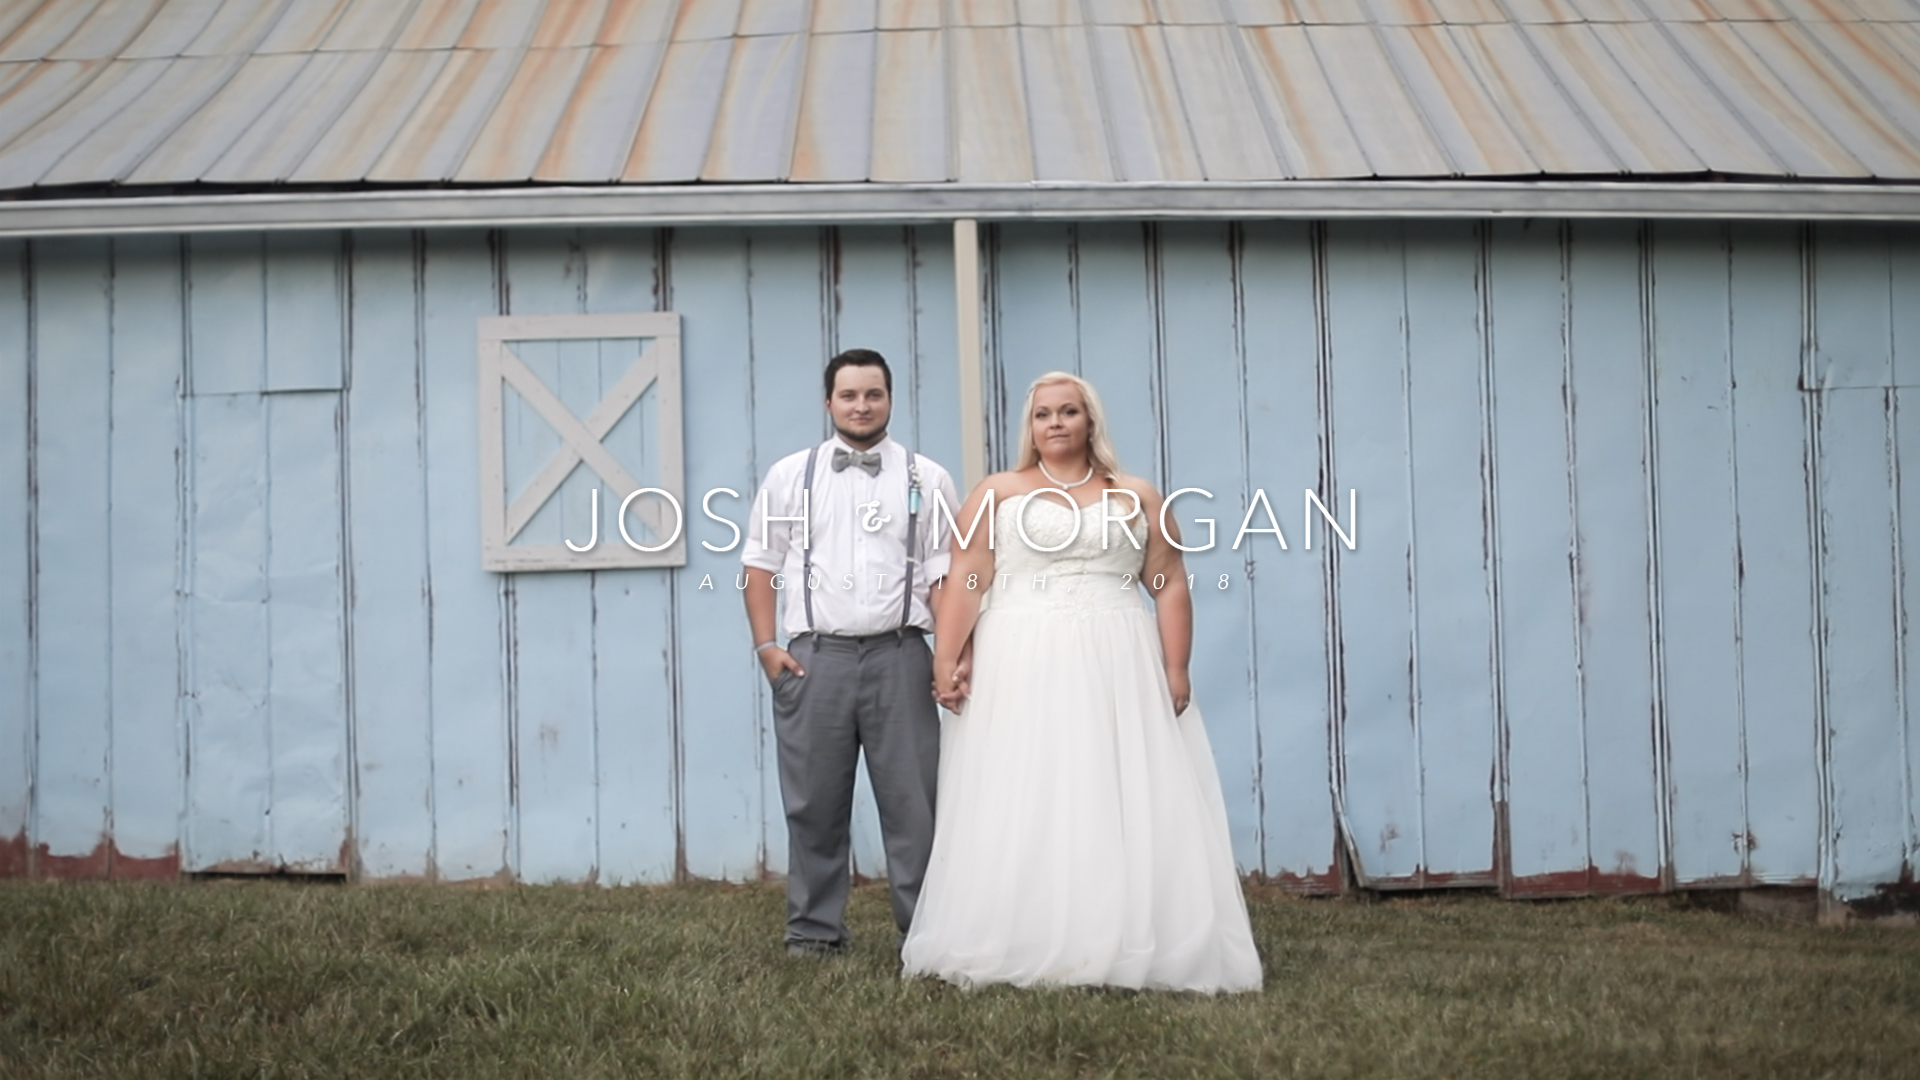 Josh + Morgan | Columbia, Tennessee | The Blue Barn Venue